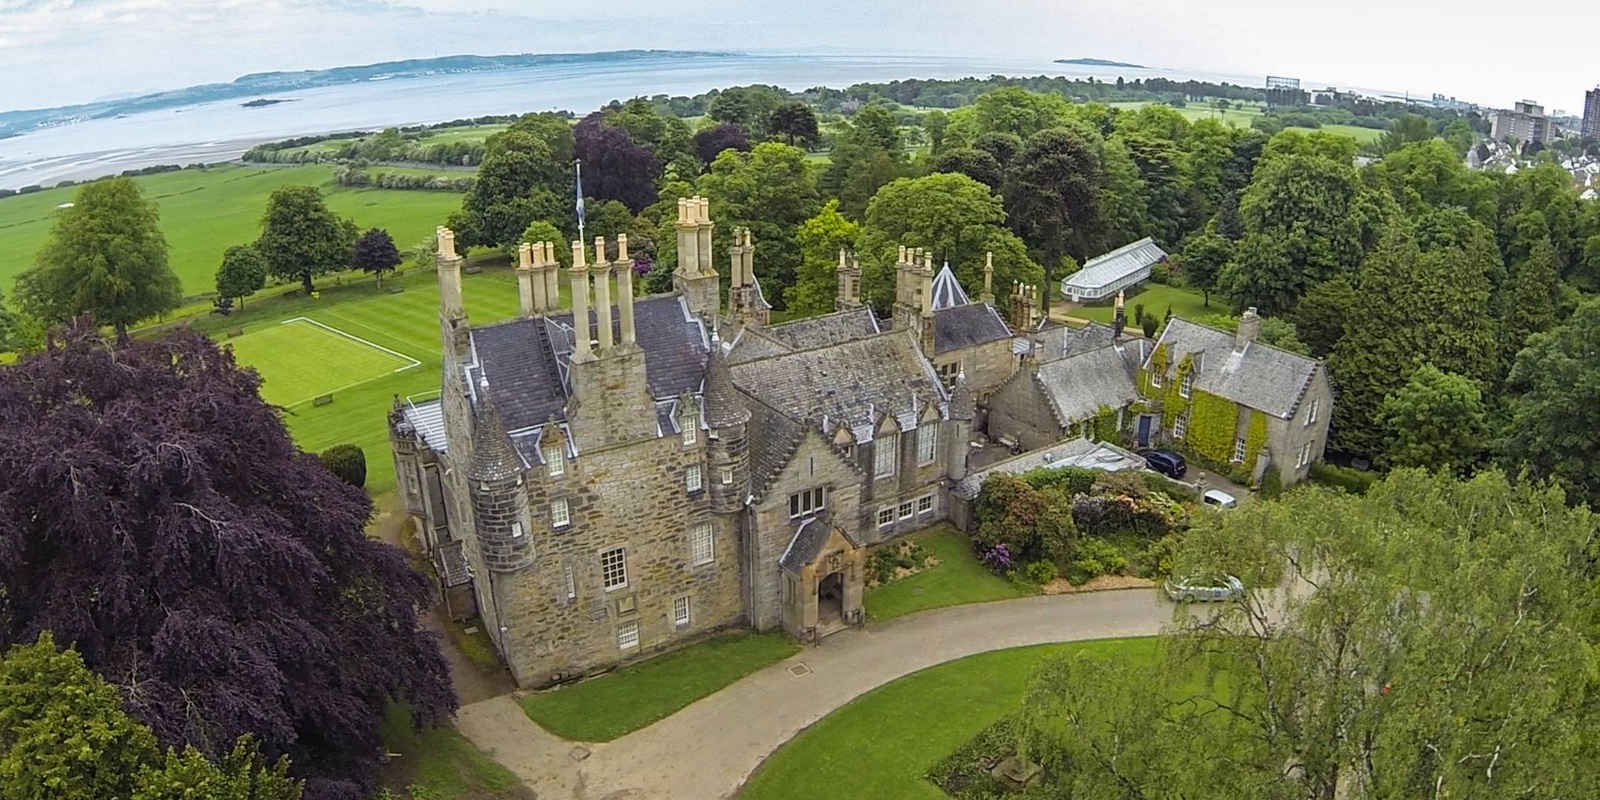 View of Laurison Castle from above